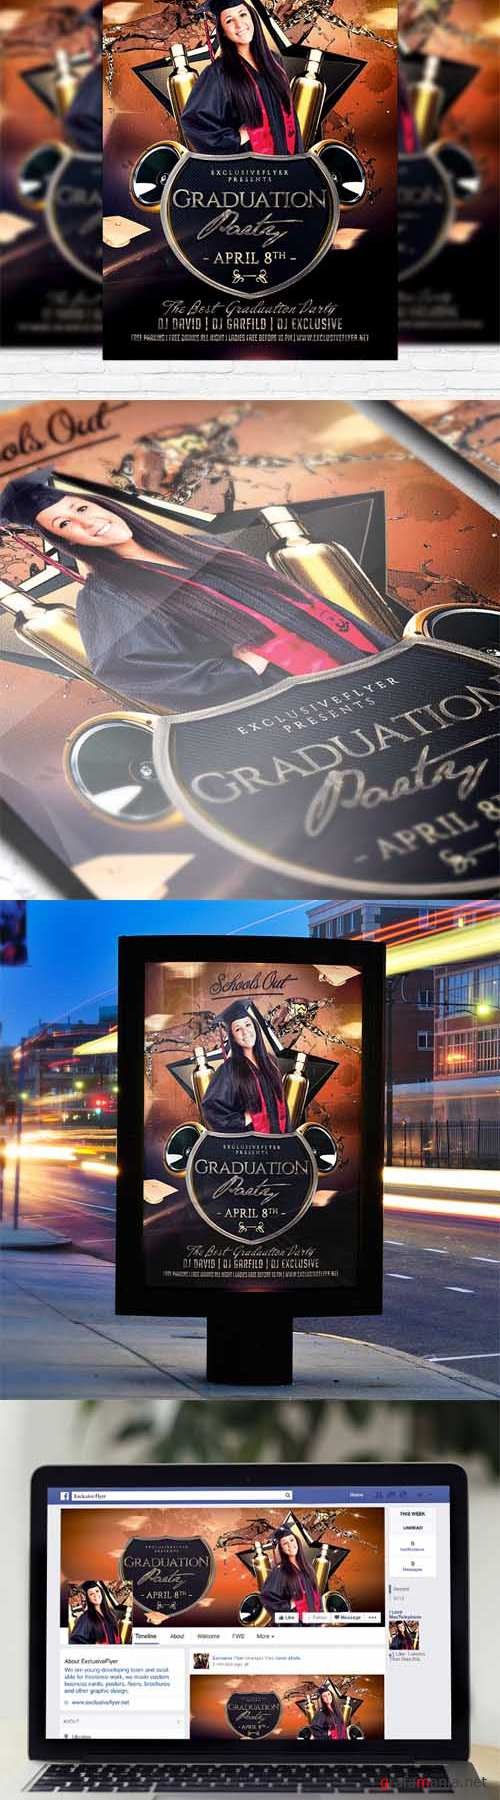 Flyer Template - Graduation Party + Facebook Cover